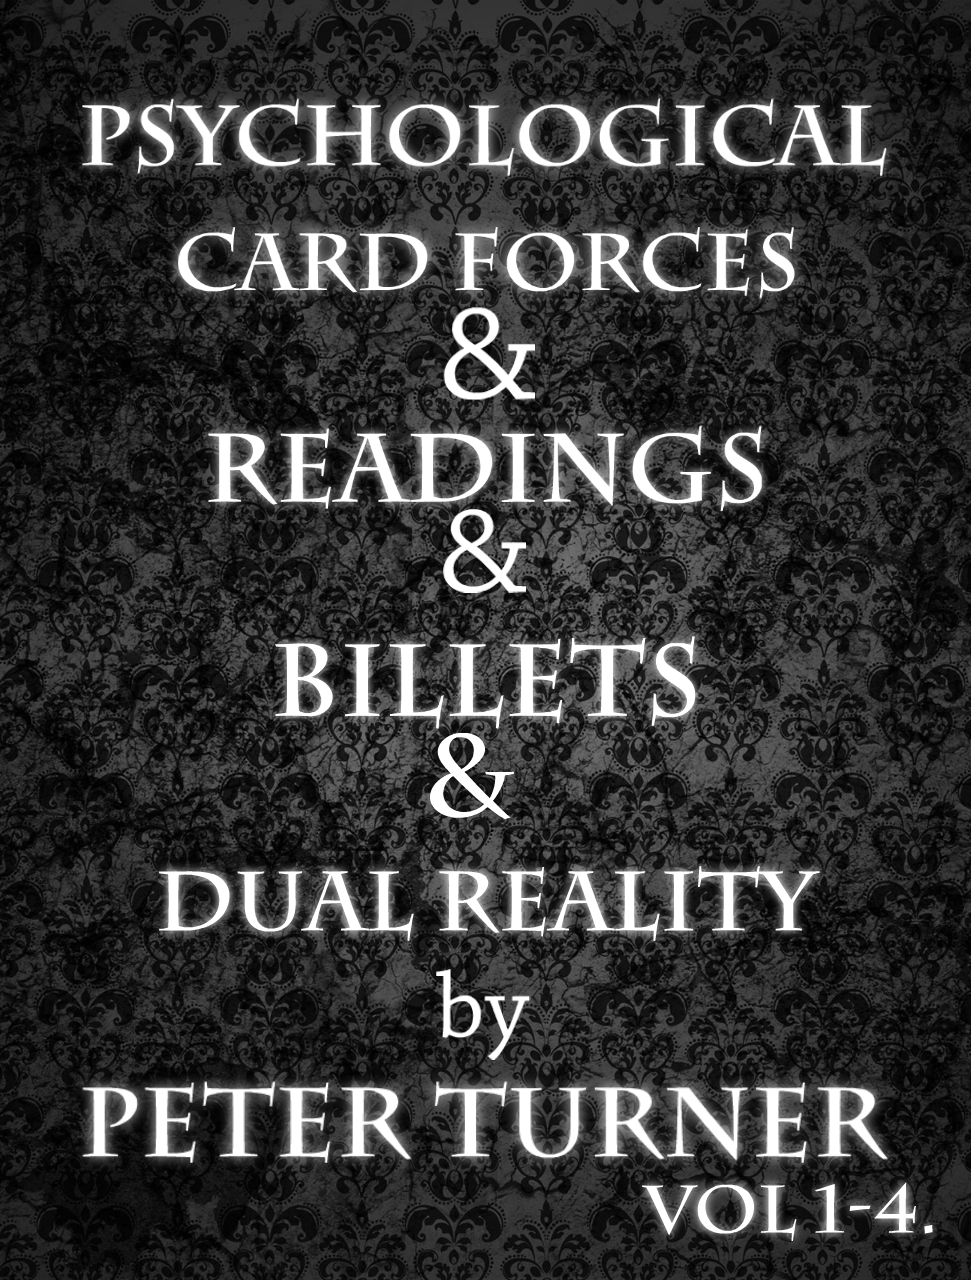 Mentalism Masterclass Vol 1-4 by Peter Turner (Psychological Card Forces, Readings, Dual Reality, Billets)